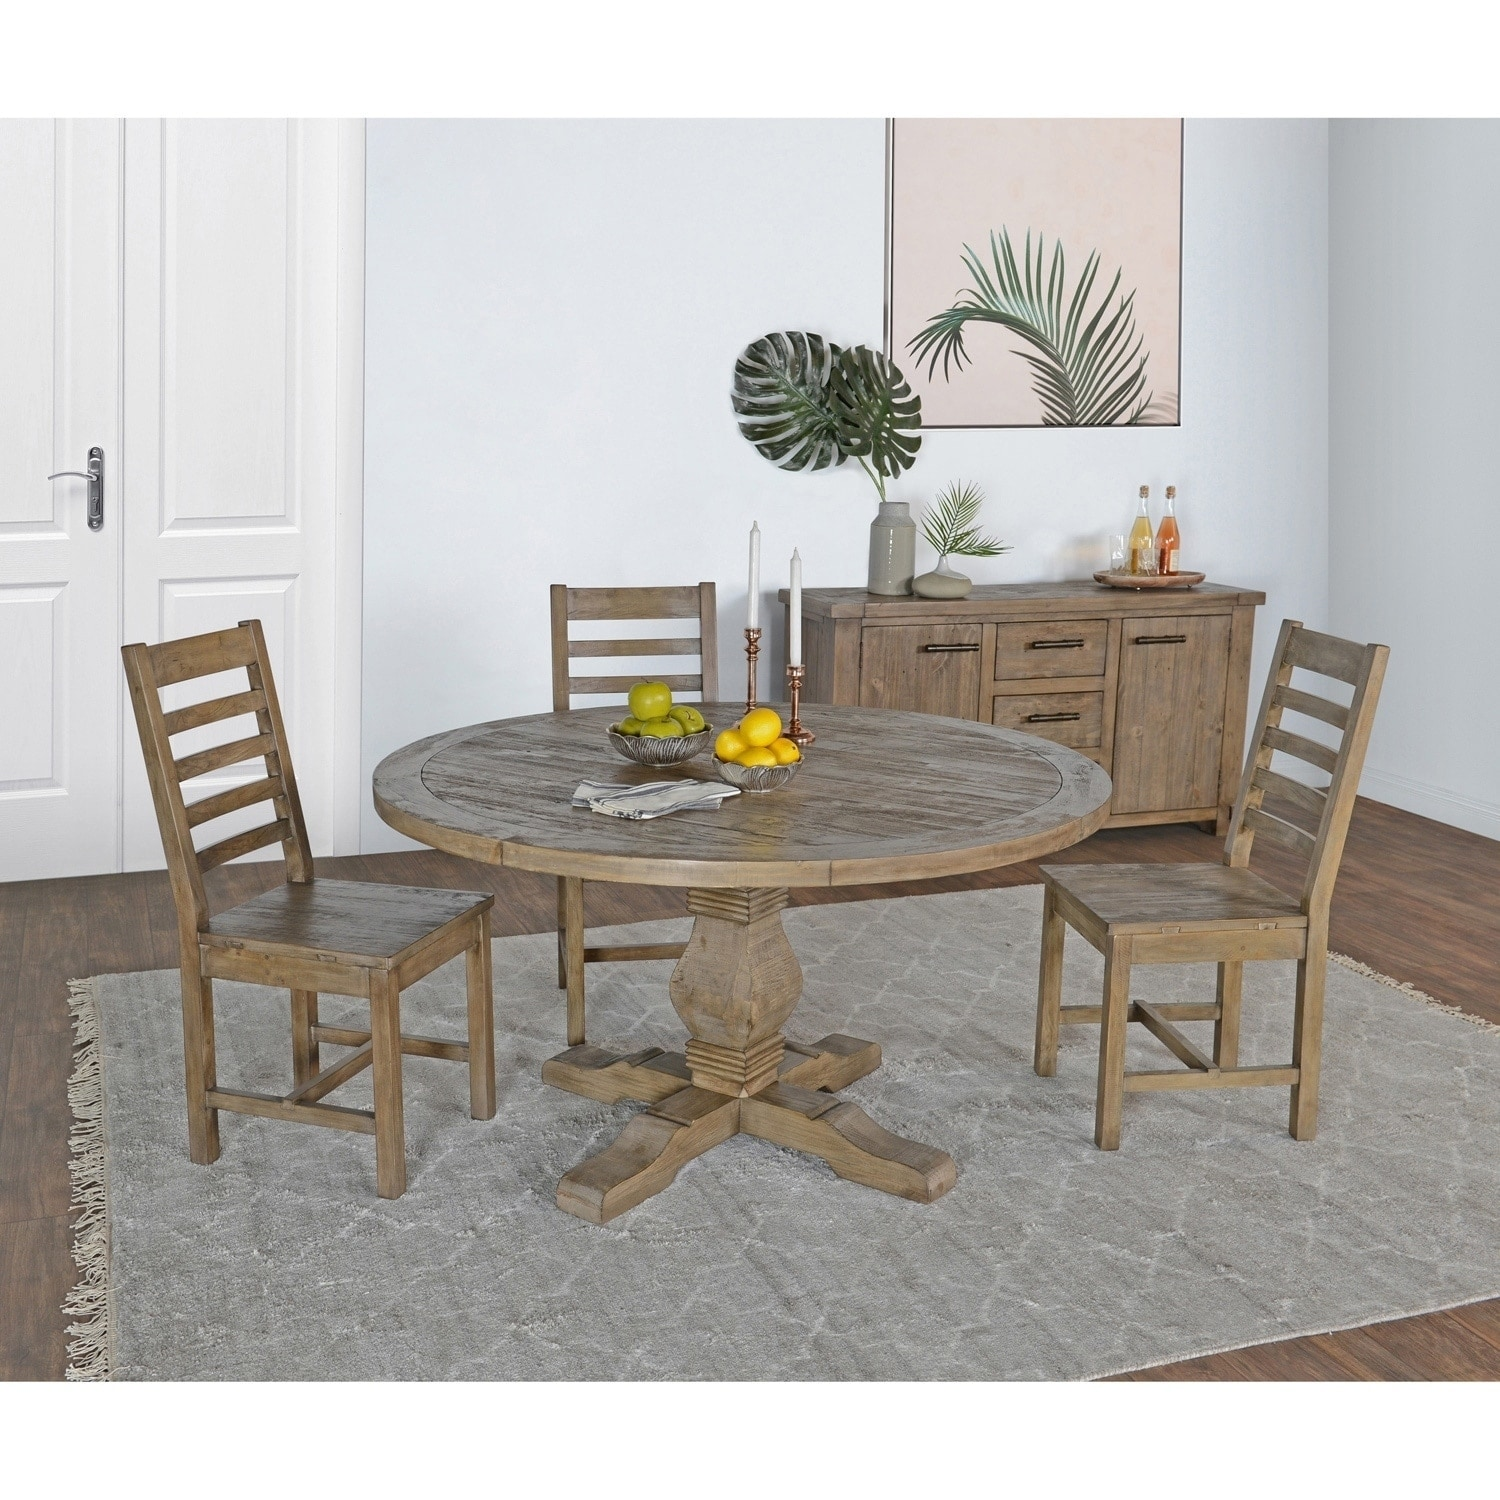 Reclaimed Dining Room Table: Table Dining Room Kitchen Round Reclaimed Pine Wood Desert